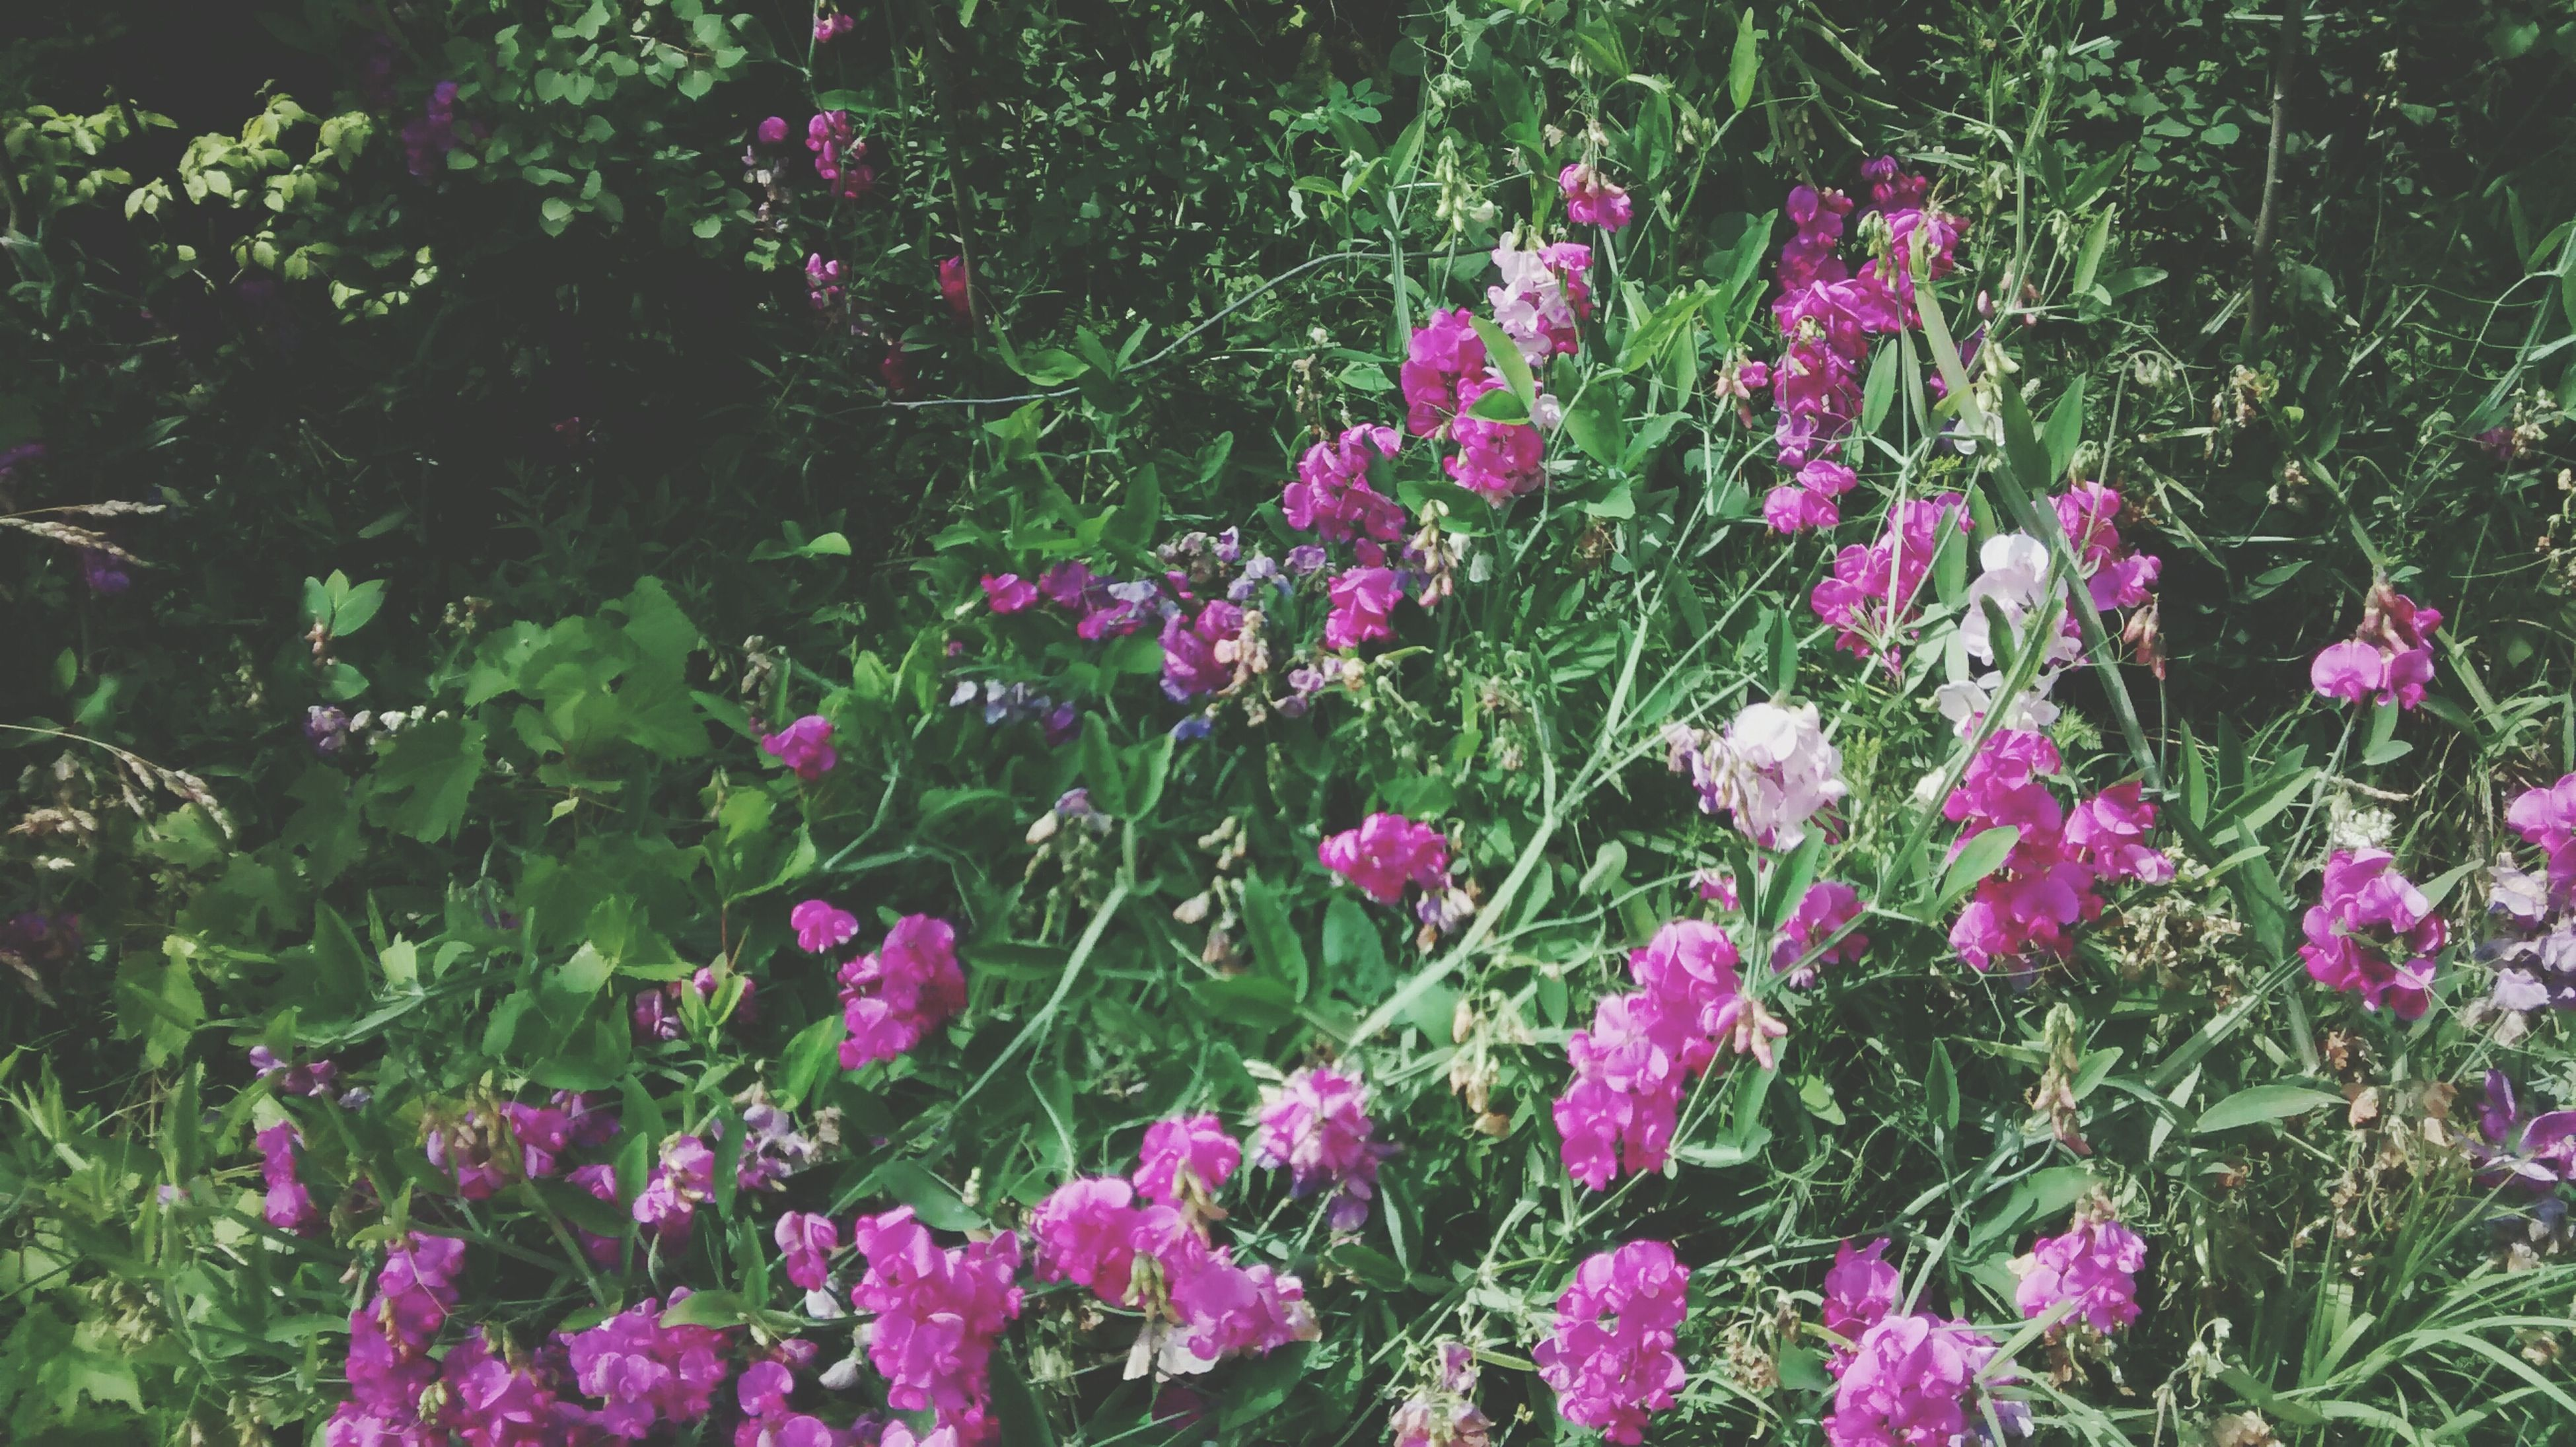 flower, growth, freshness, beauty in nature, fragility, plant, petal, nature, blooming, pink color, flower head, in bloom, green color, outdoors, day, no people, tranquility, purple, botany, growing, blossom, close-up, abundance, grass, focus on foreground, lush foliage, tranquil scene, selective focus